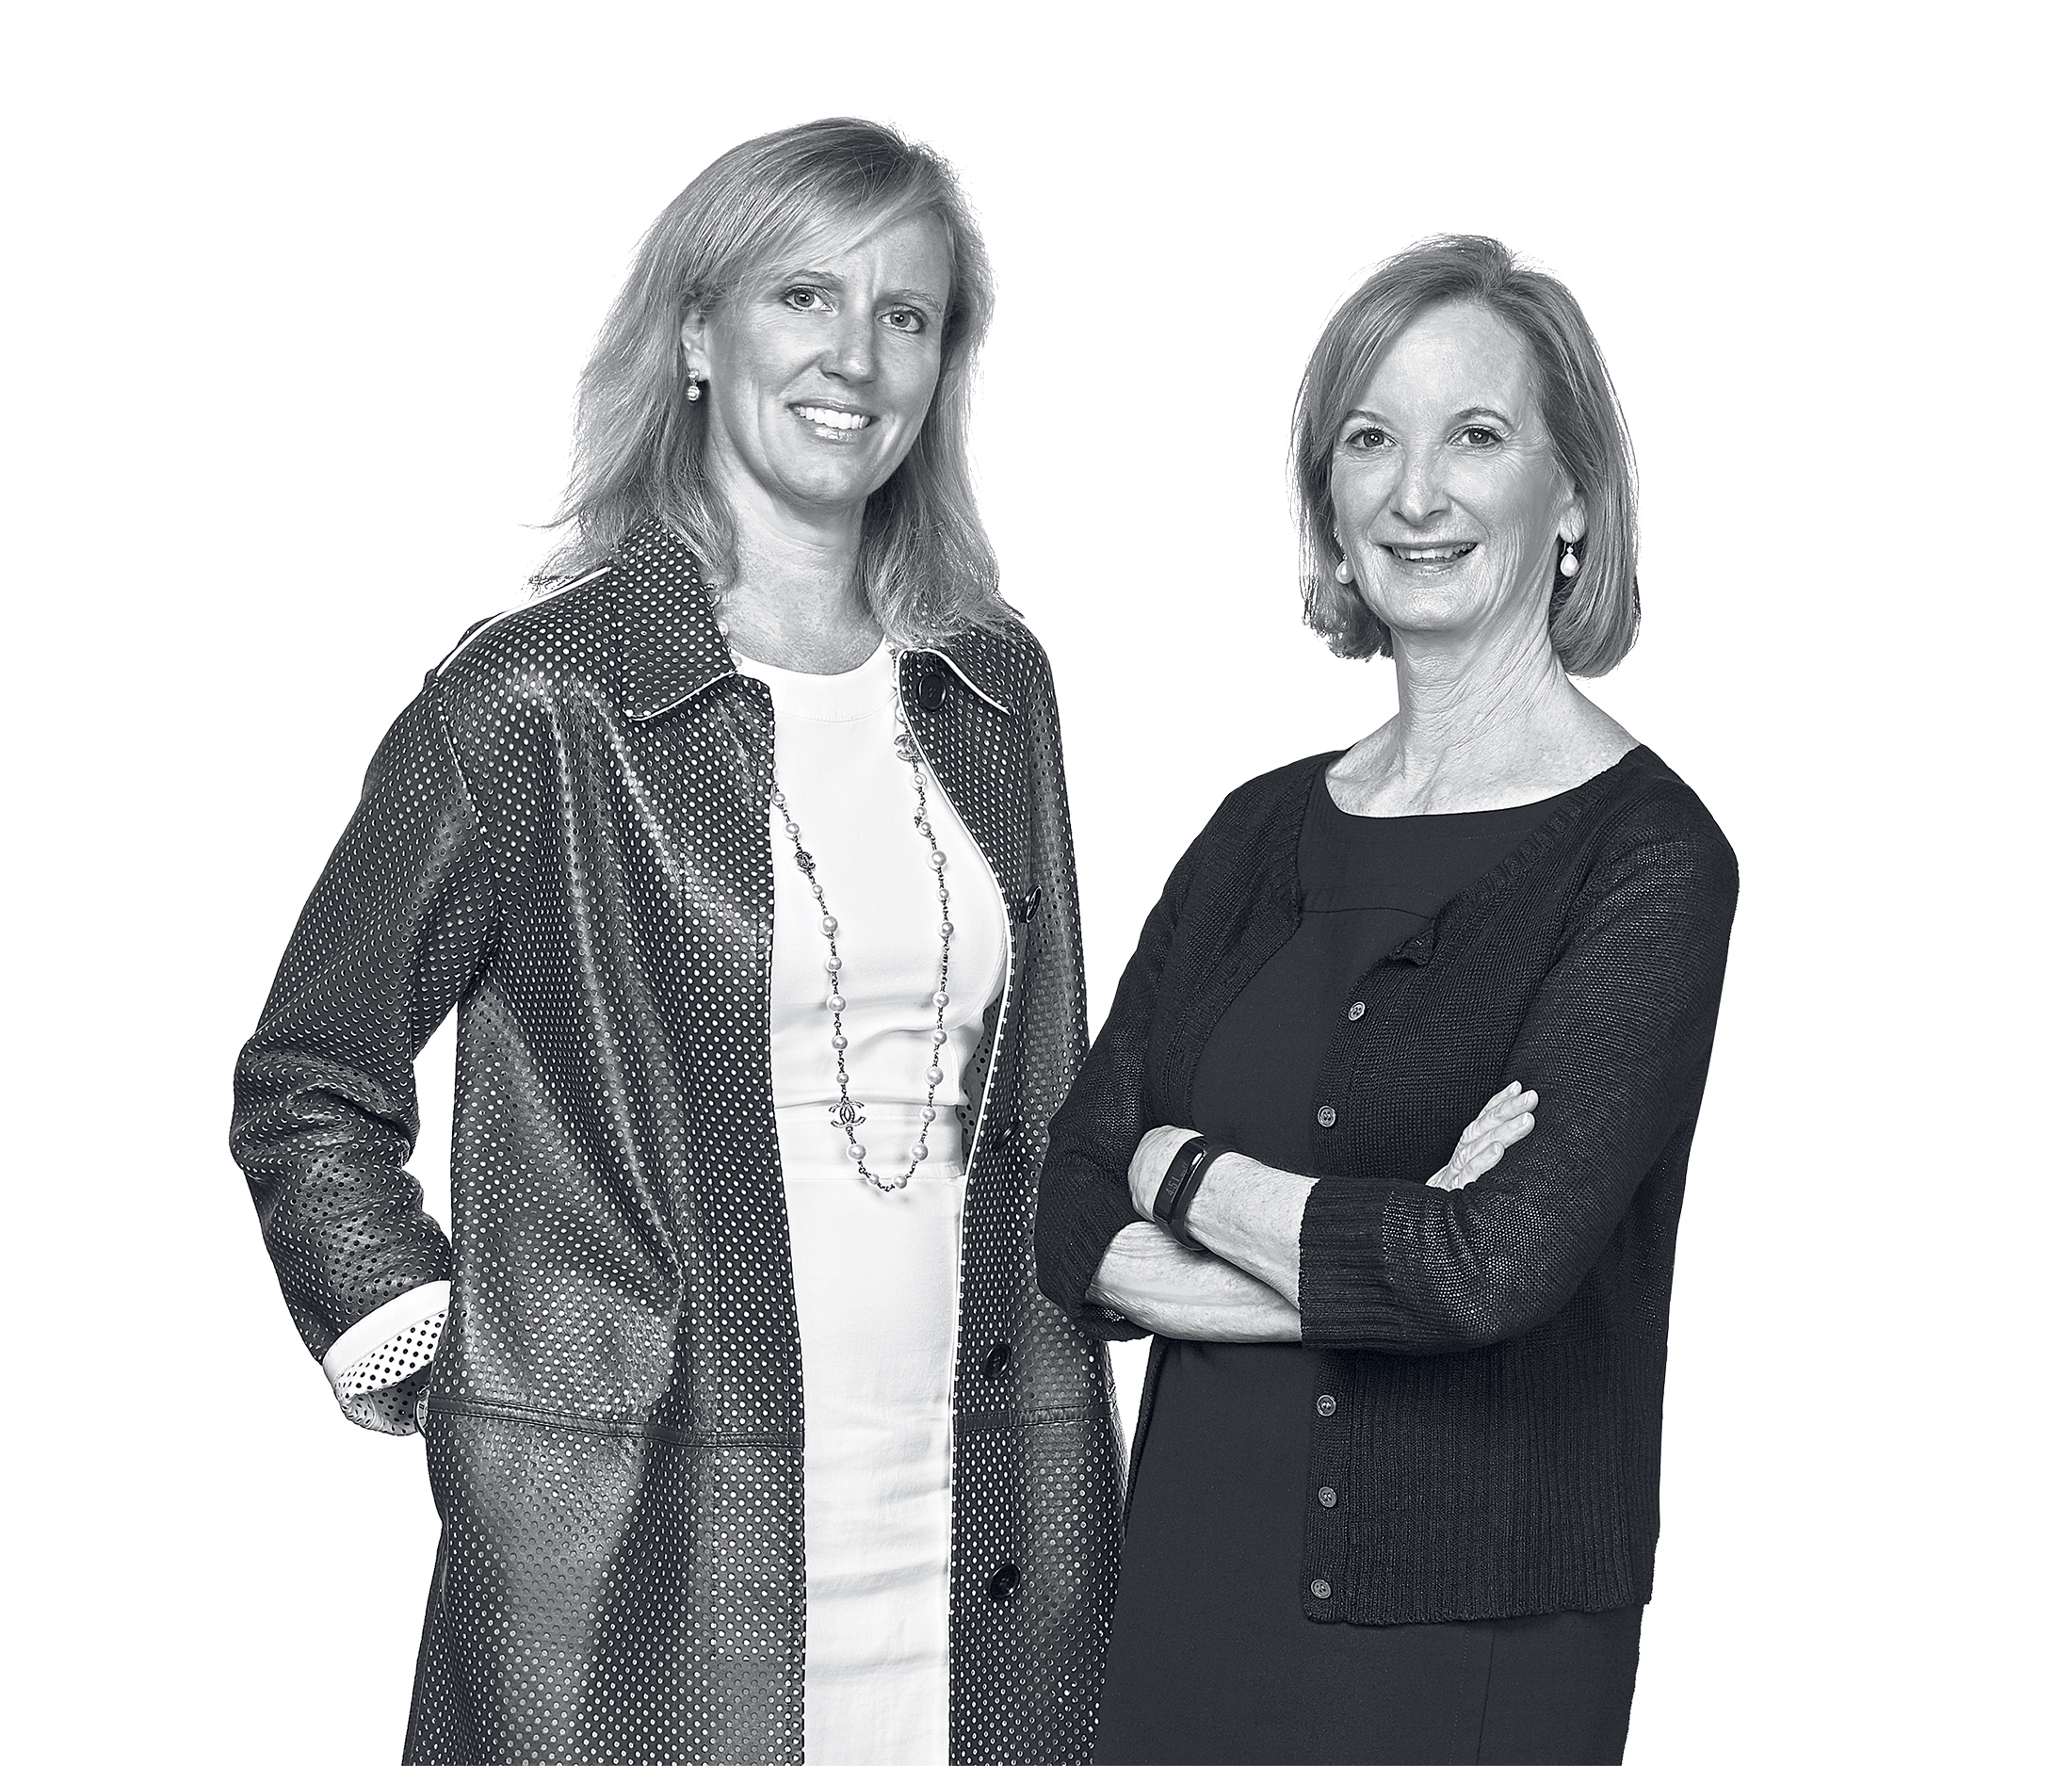 Jodie McLean and Deborah Ratner Salzberg. Photograph by Jeff Elkins.